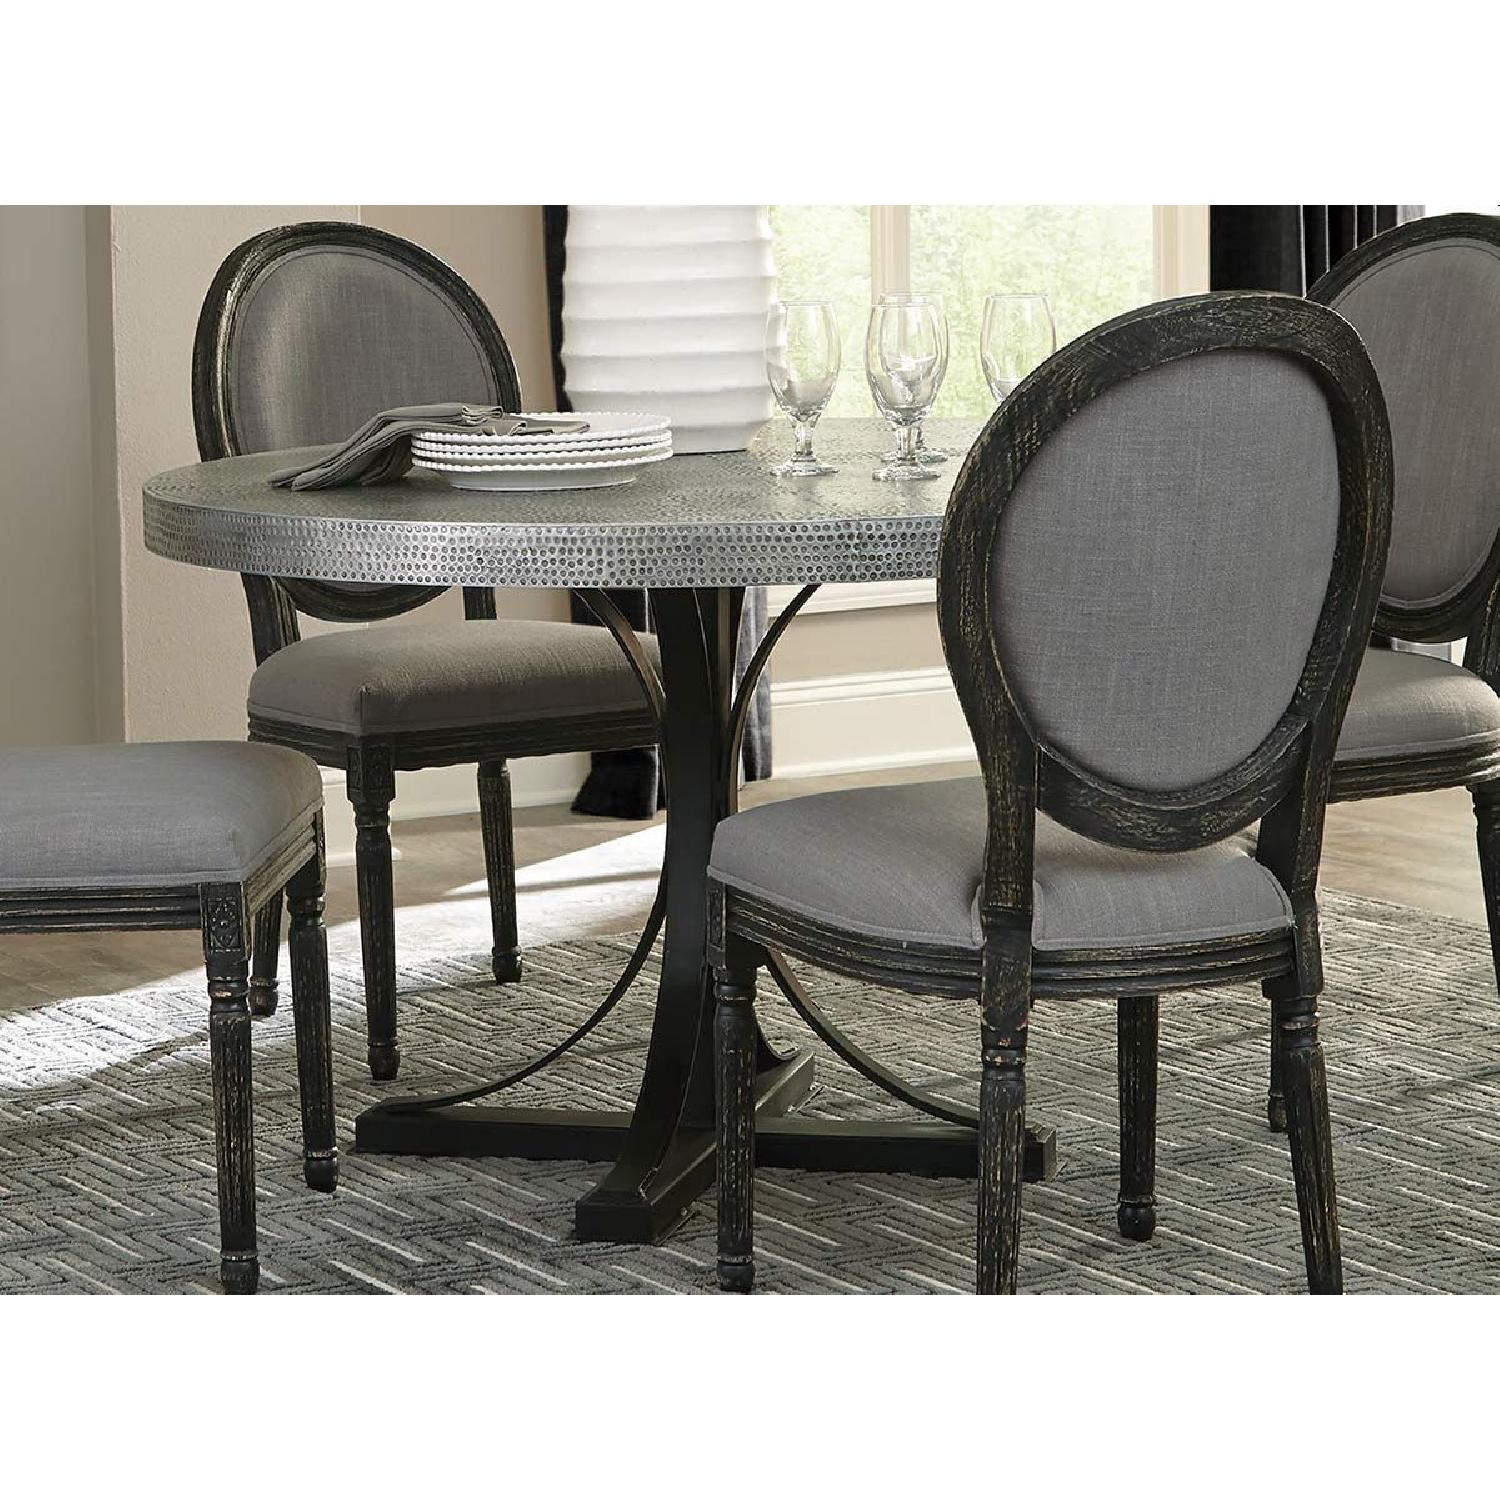 Bohemian Style Round Dining Table w/ Hand-Hammered Iron Top - image-2